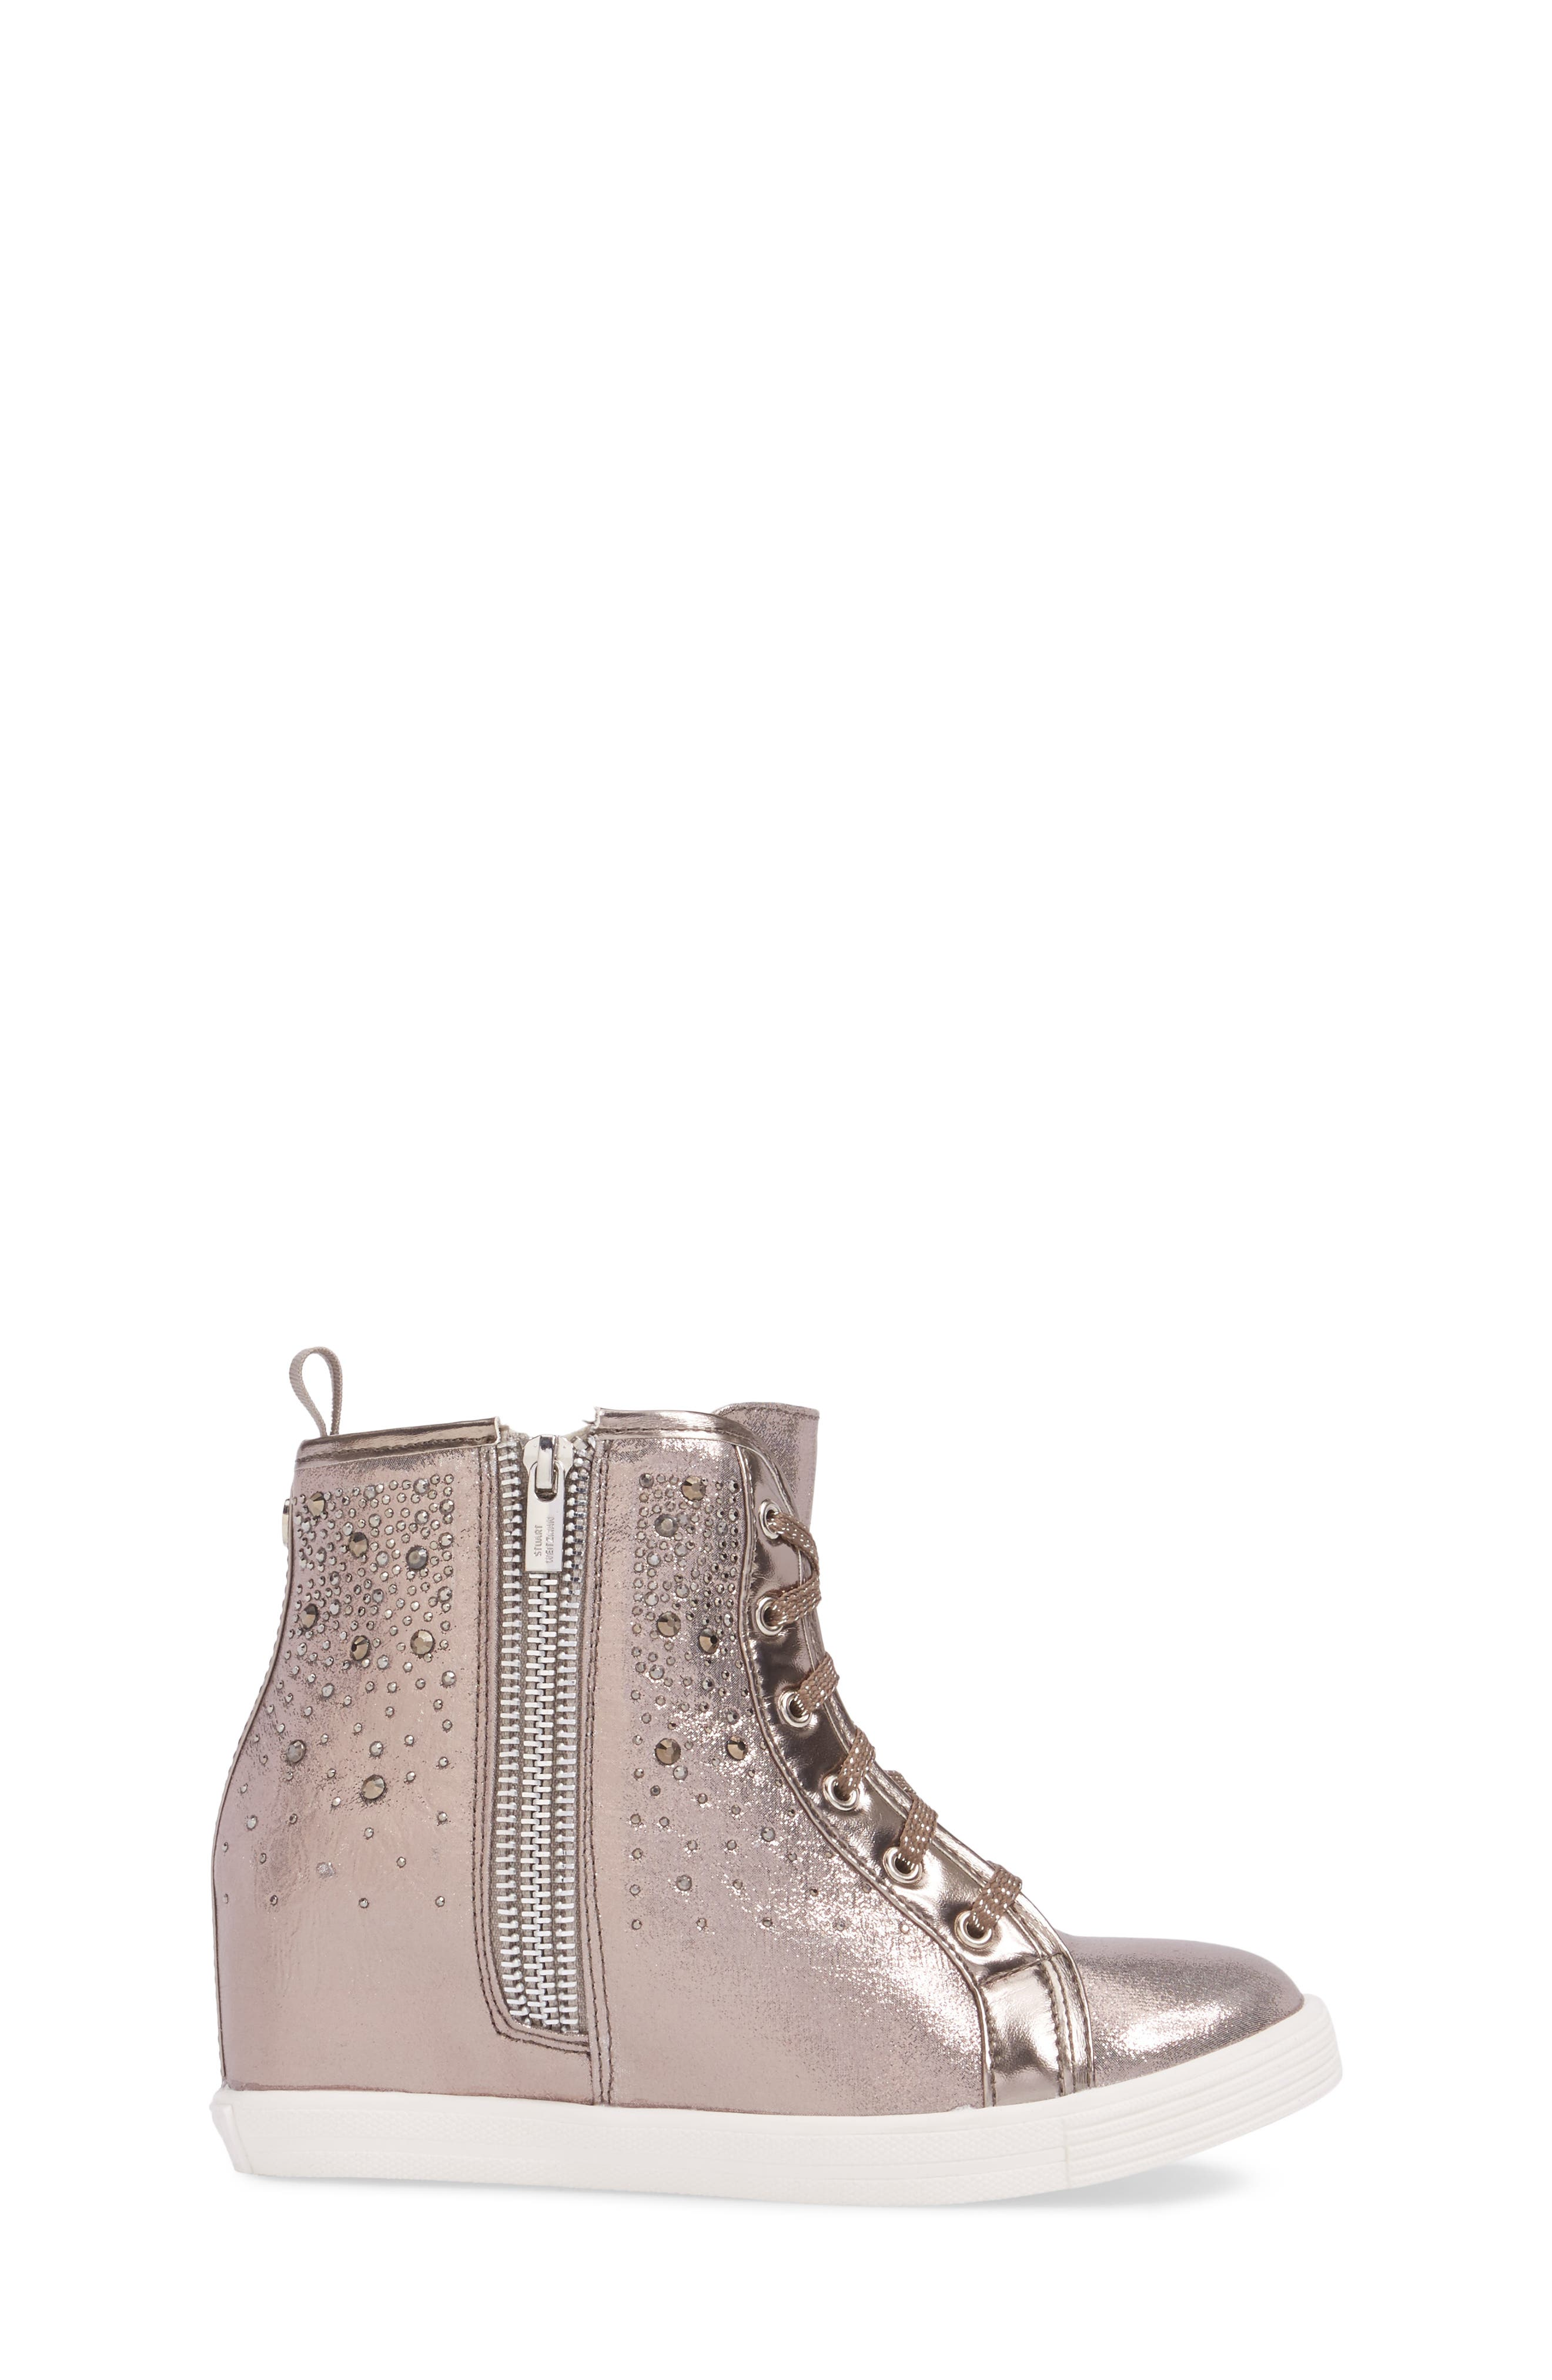 Vance Double Embellished Concealed Wedge High Top,                             Alternate thumbnail 6, color,